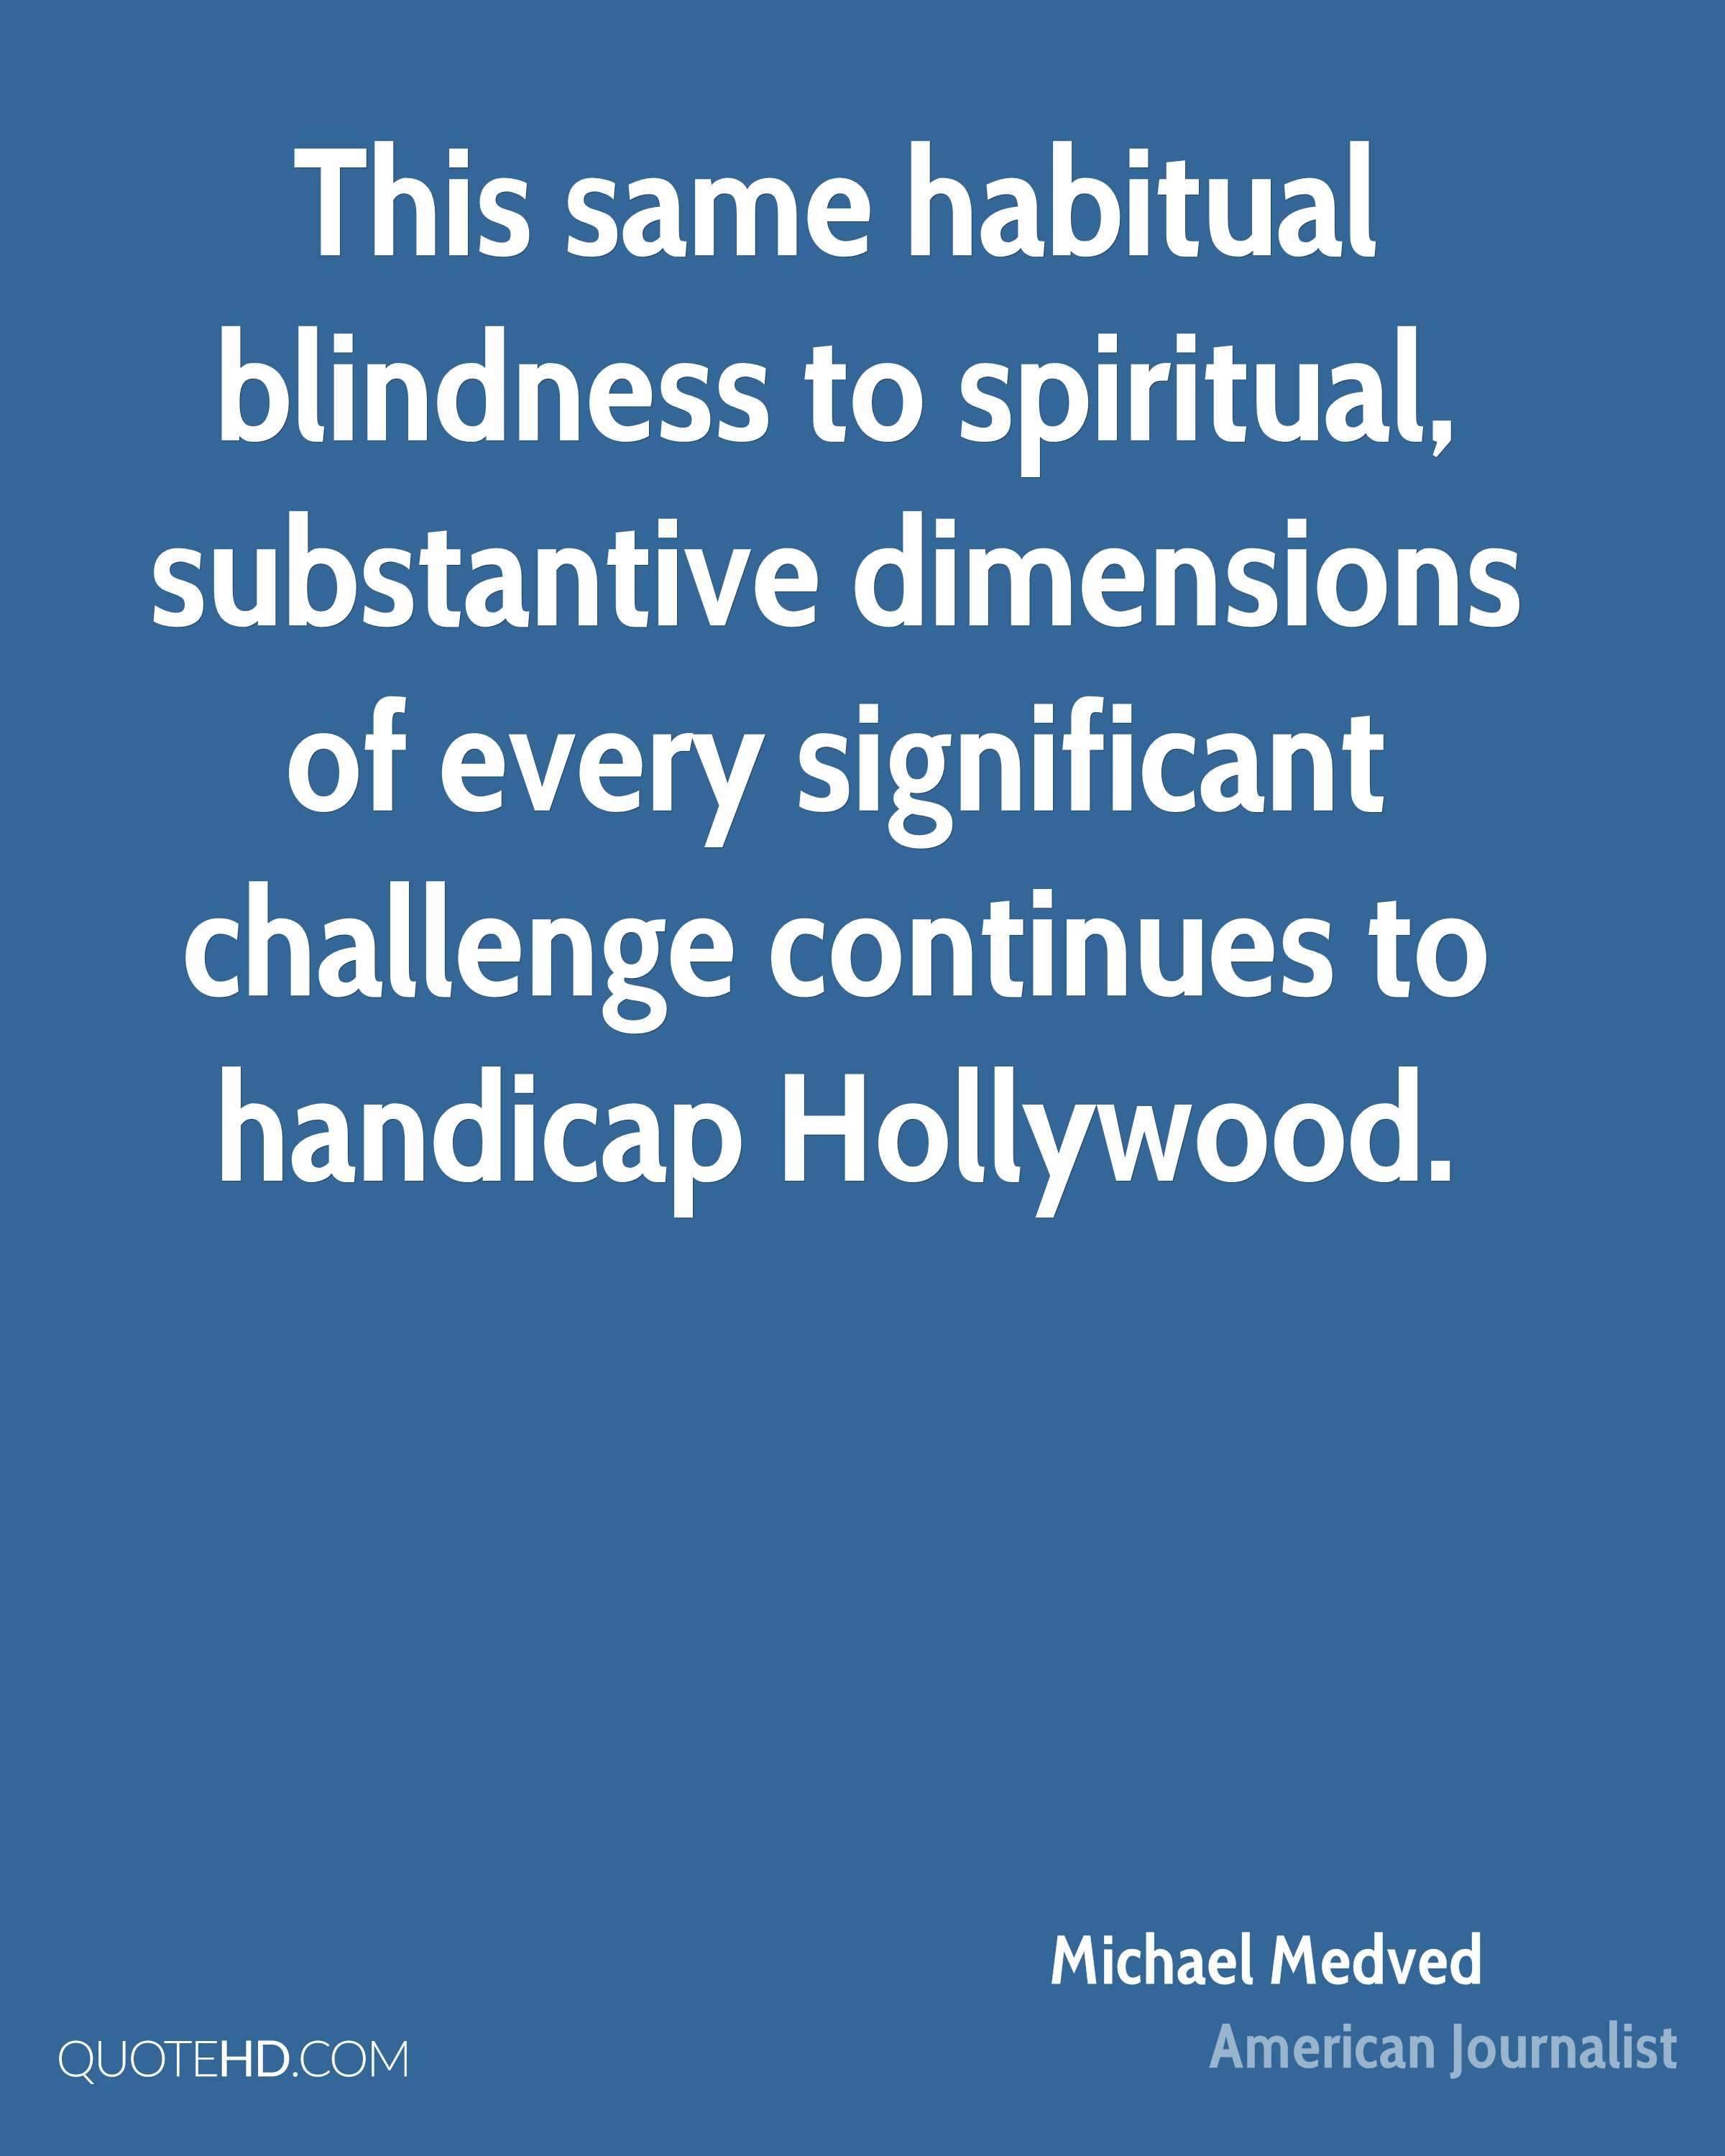 This same habitual blindness to spiritual, substantive dimensions of every significant challenge continues to handicap Hollywood.